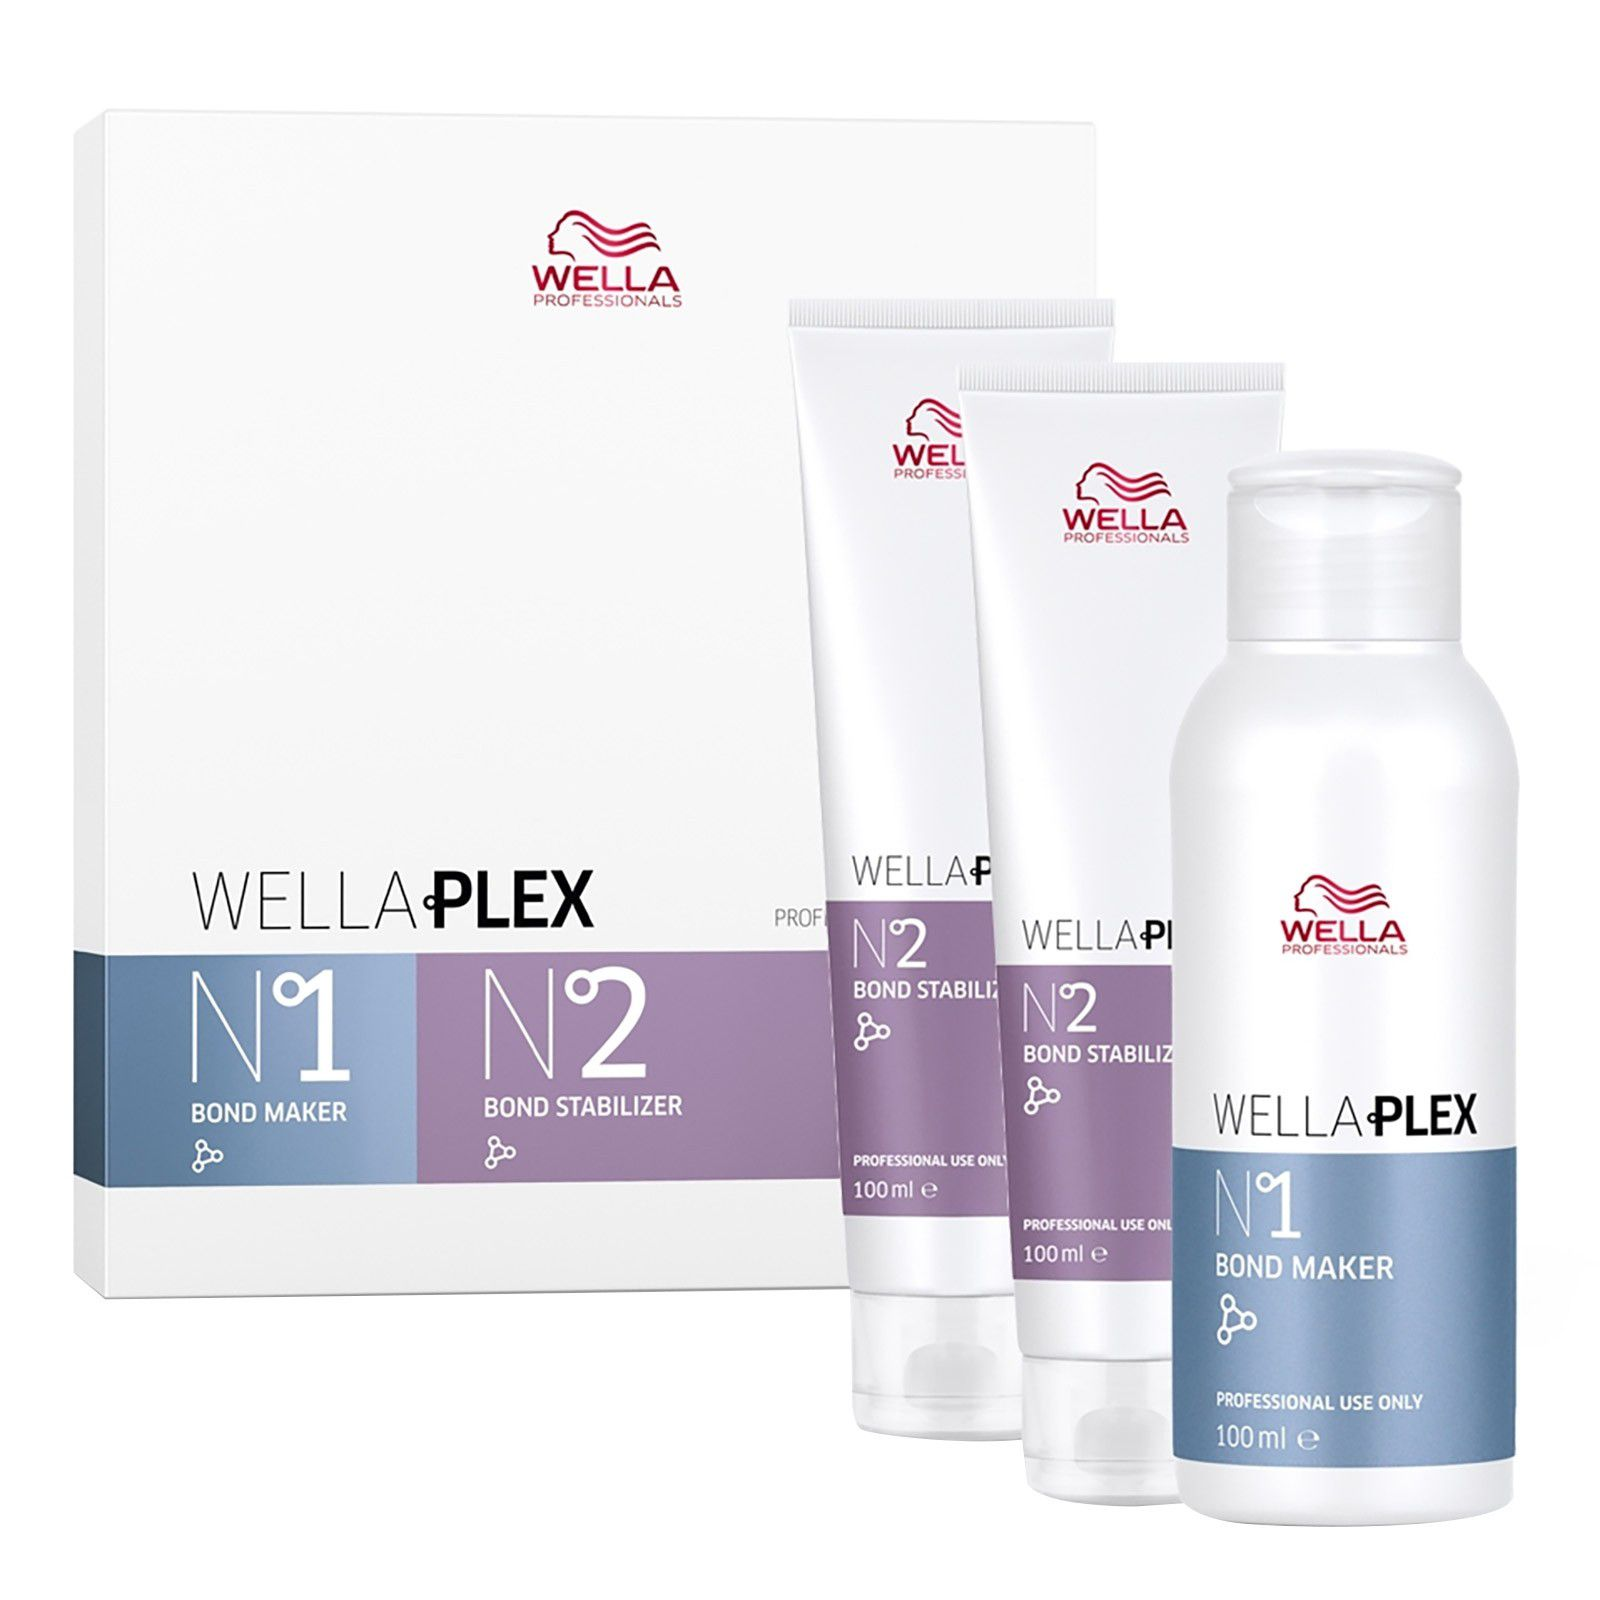 Wella Professionals Wella Plex Kit 1 Bond Maker nº1 100ml e 2 Bond Stabilizer nº 2 100ml